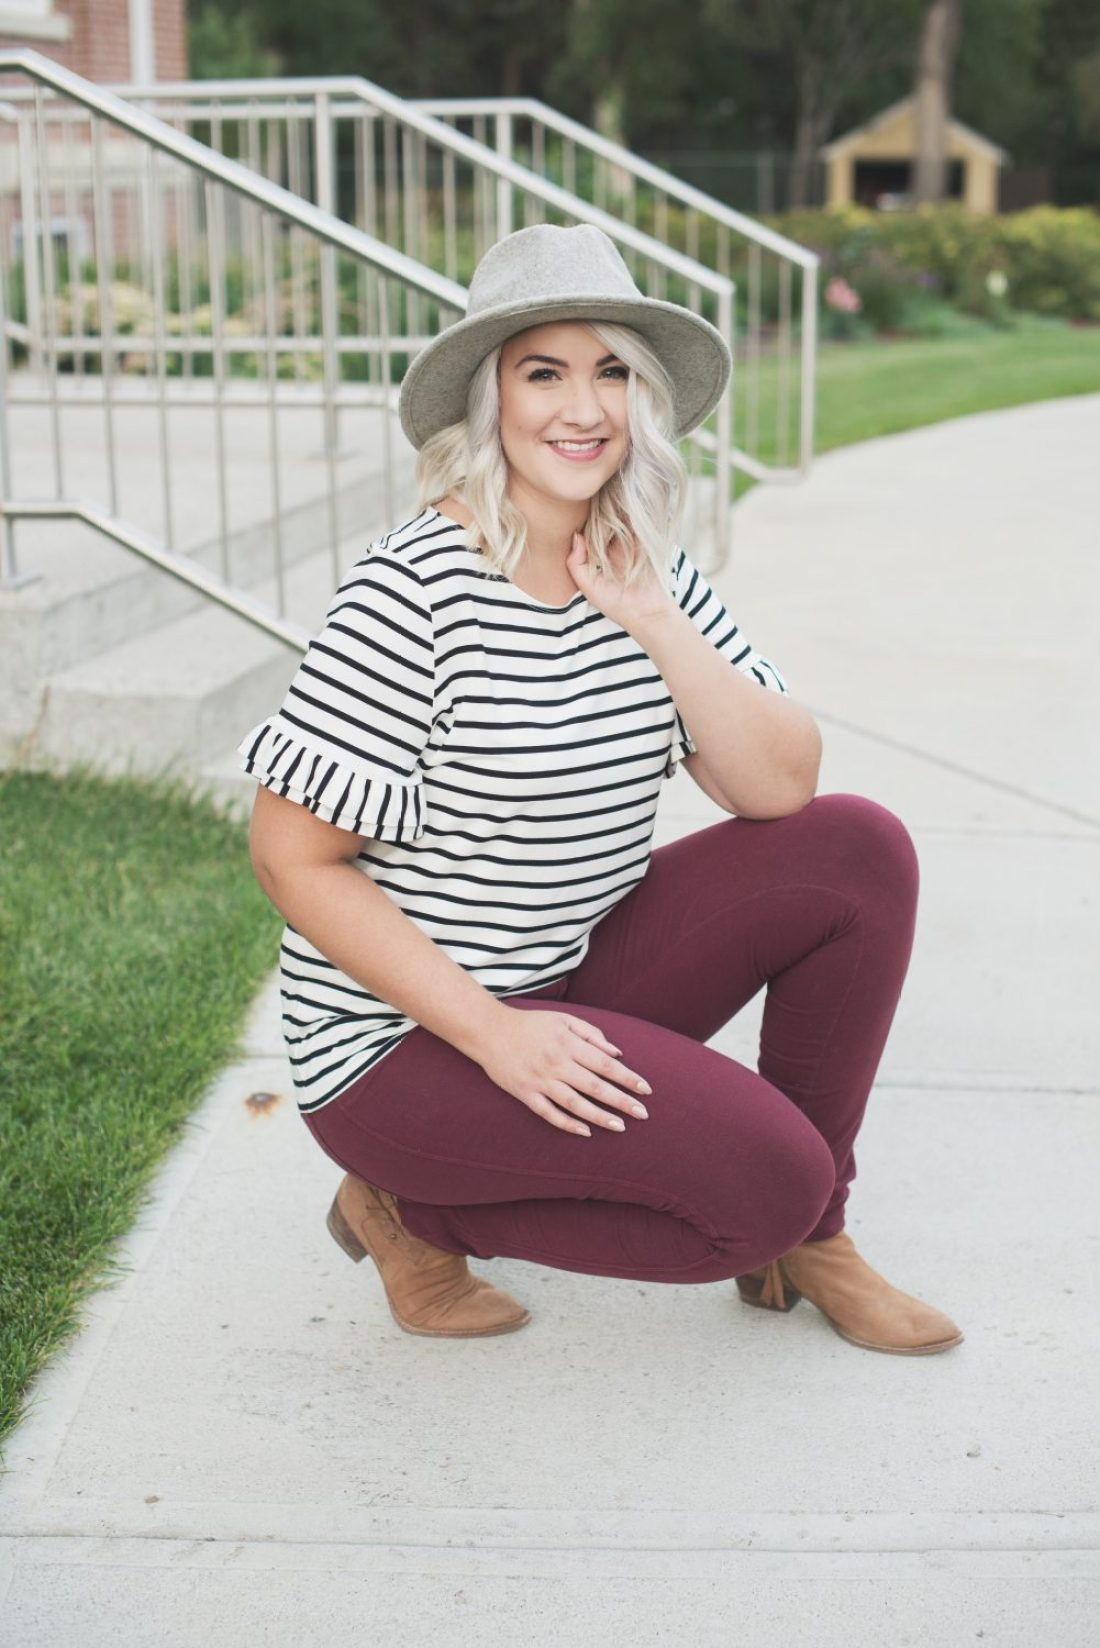 Ruffle sleeved striped top with wool hat